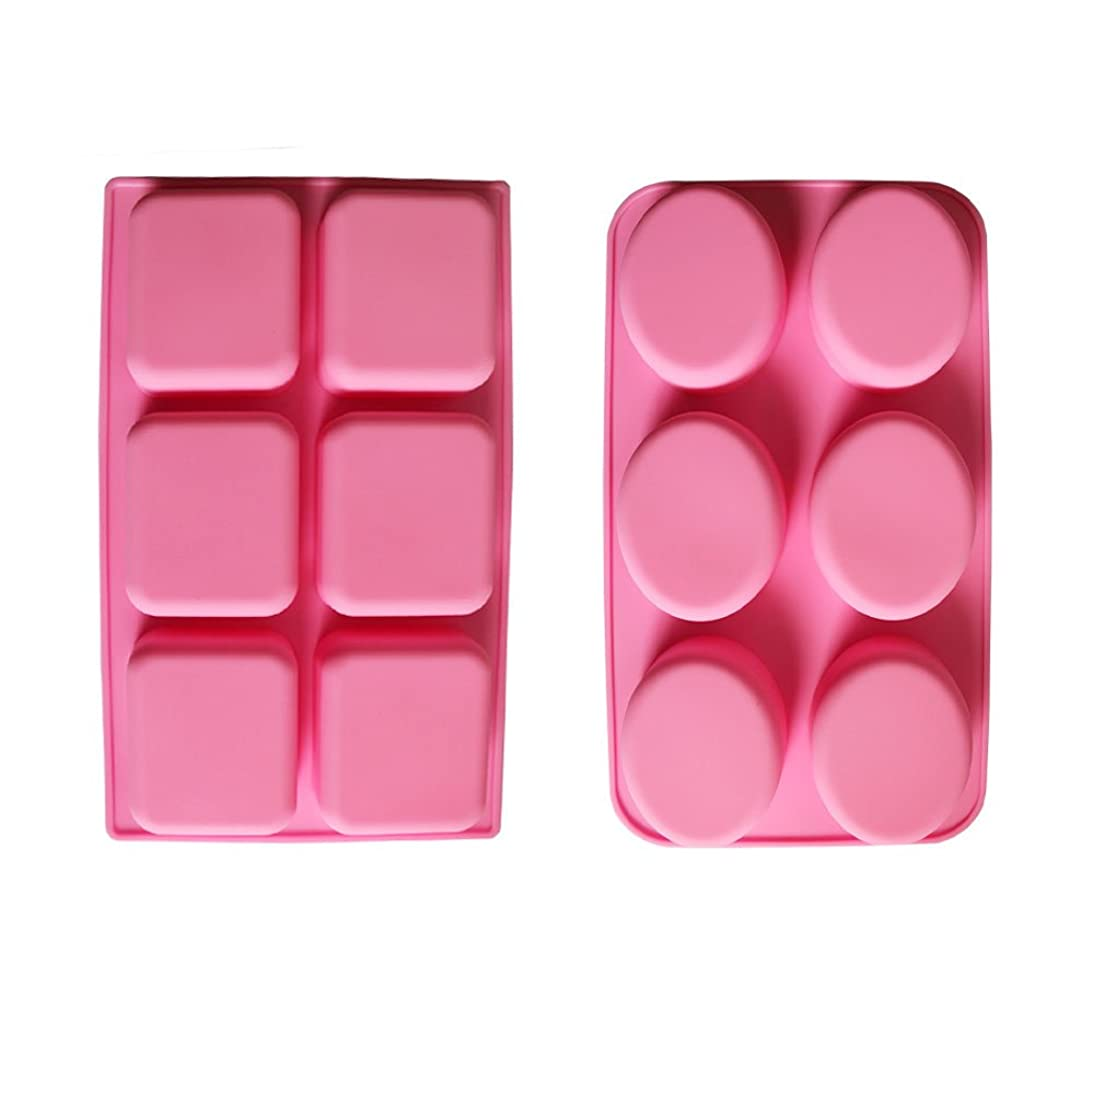 BAKER DEPOT 6 Holes Oval and Rectangular Silicone Mold for Handmade Soap Making, Set of 2